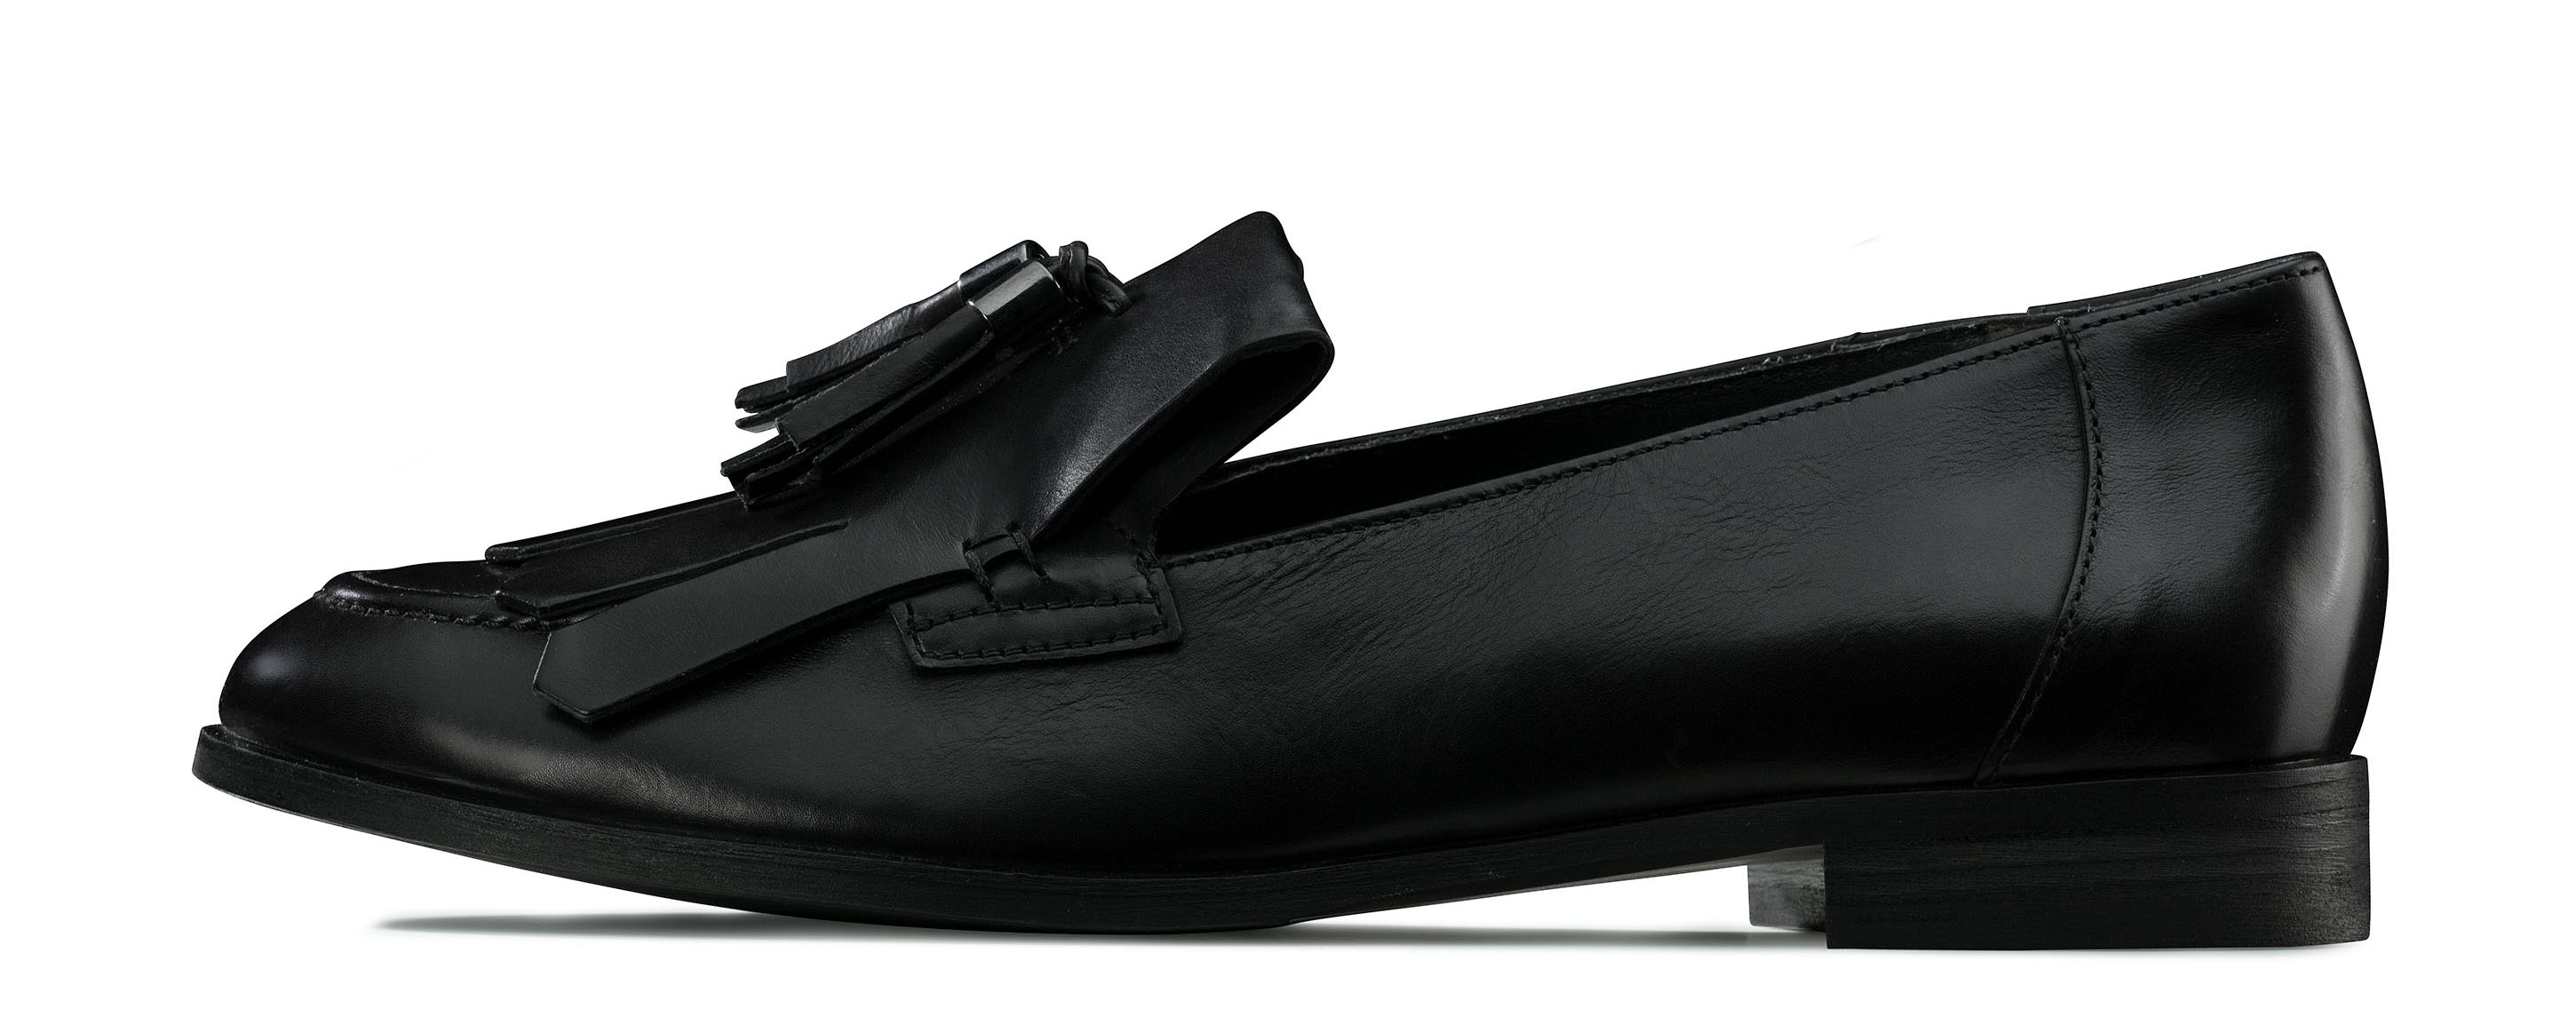 hochwertiger tassel loafer in schwarz paul green. Black Bedroom Furniture Sets. Home Design Ideas